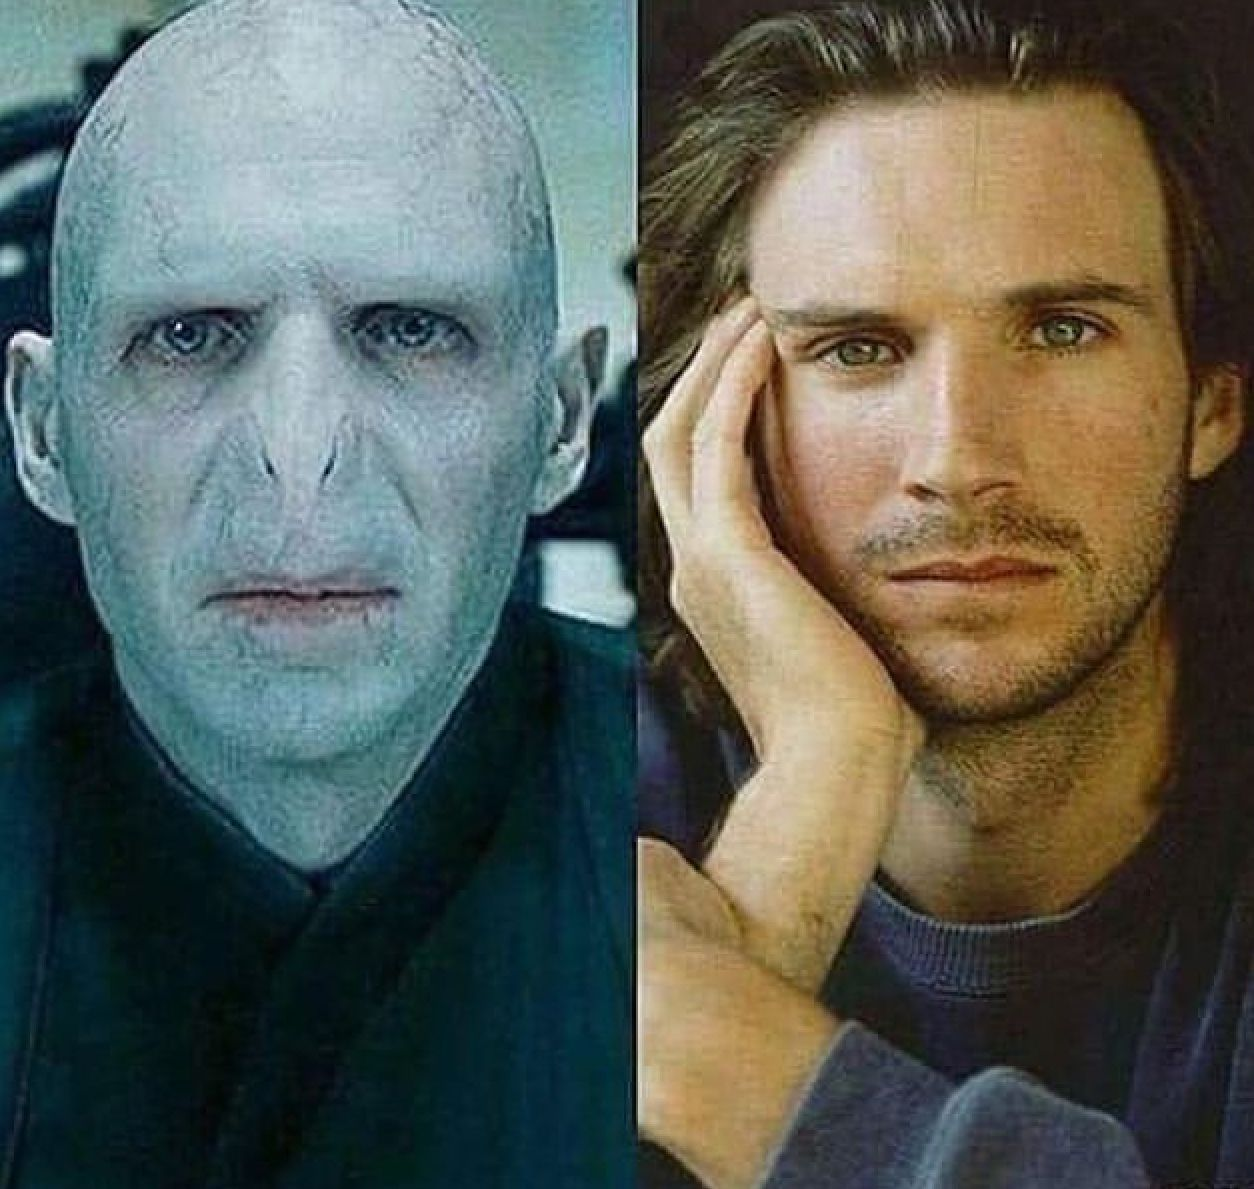 Pin by Emily Barney on Harry Potter | Voldemort actor ...